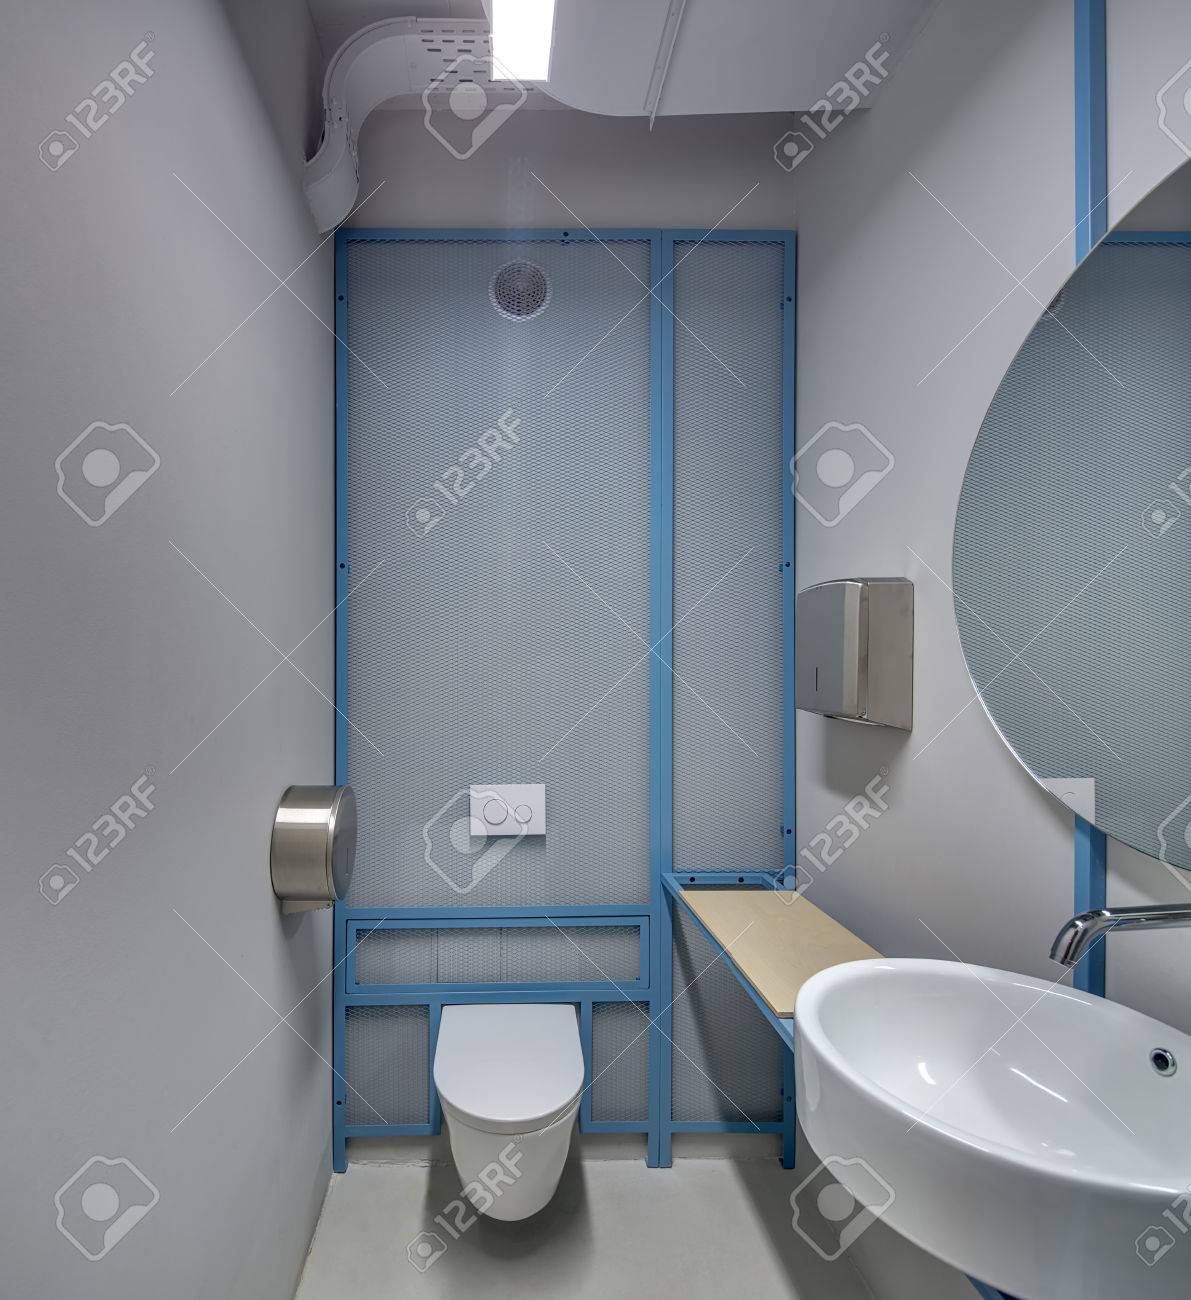 Lavatory In A Loft Style With The Glowing Lamps And Gray Walls ...